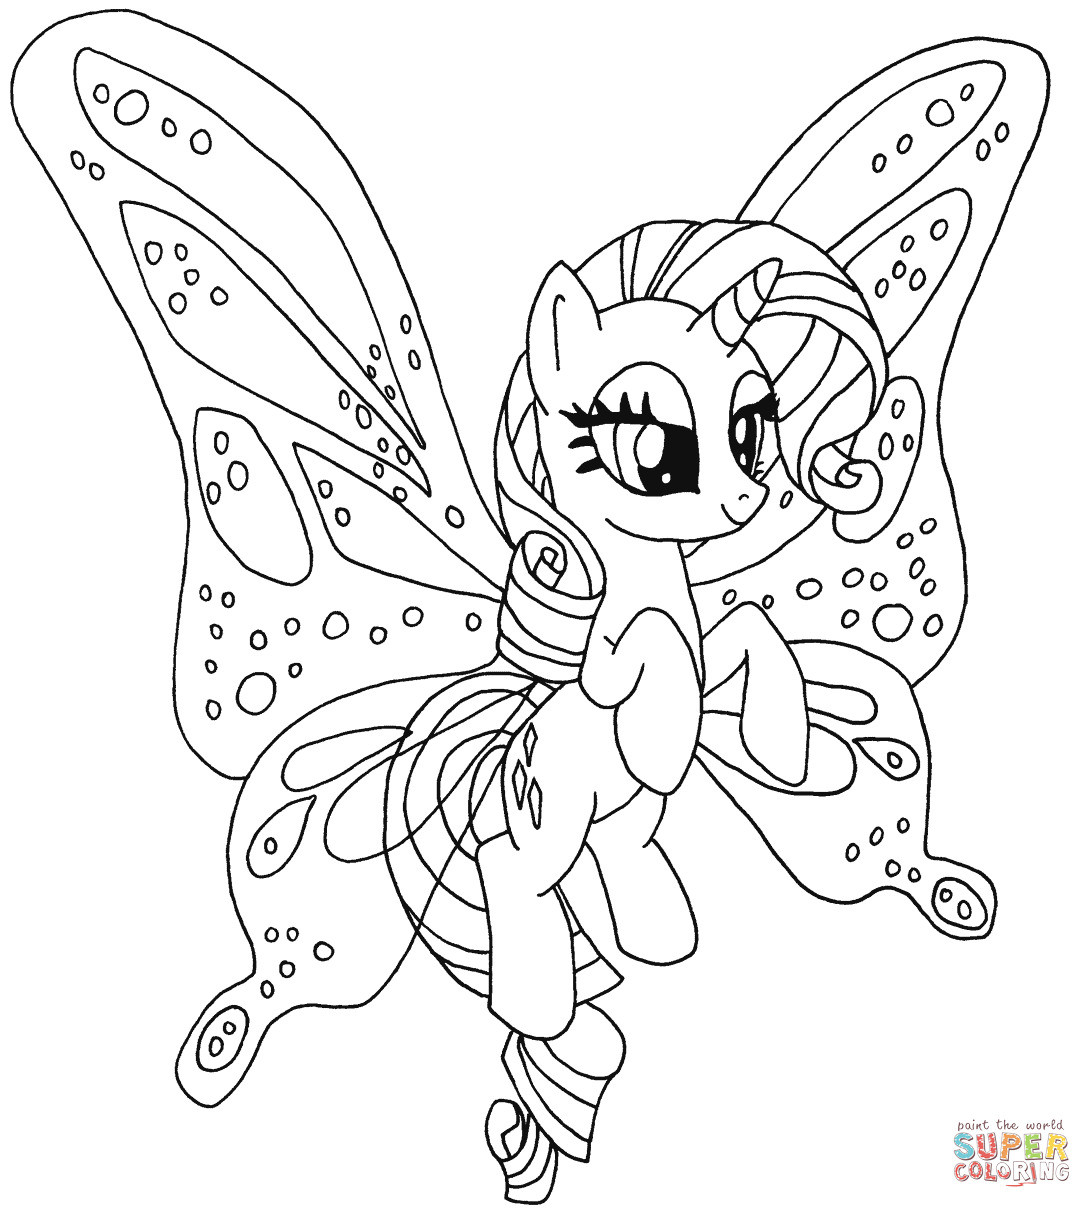 My Little Pony Friendship is Magic Ausmalbilder Genial Coloring Pages My Little Pony Schön My Little Pony Friendship is Sammlung